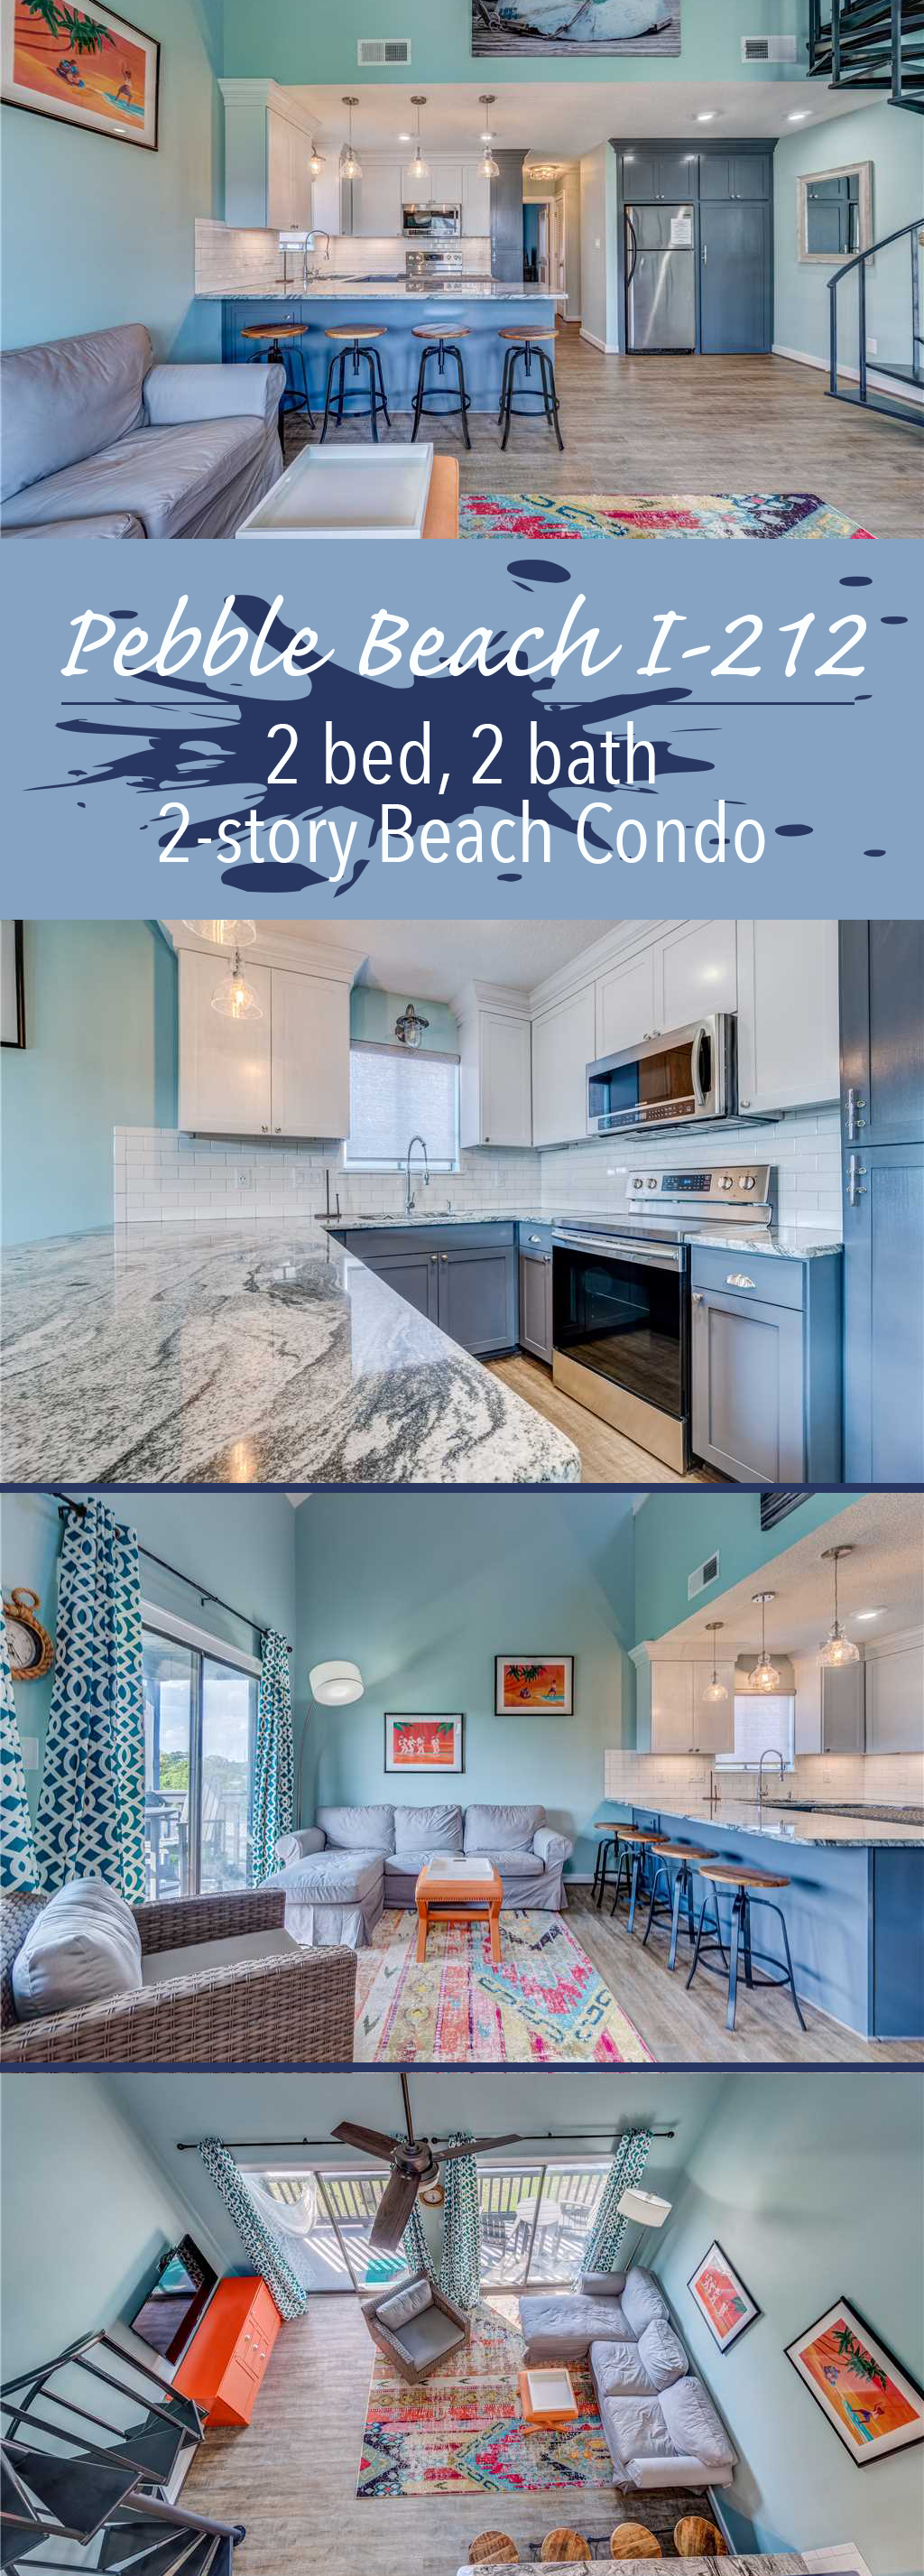 Featured Property of The Week – Pebble Beach I-212 | Pebble beach ...